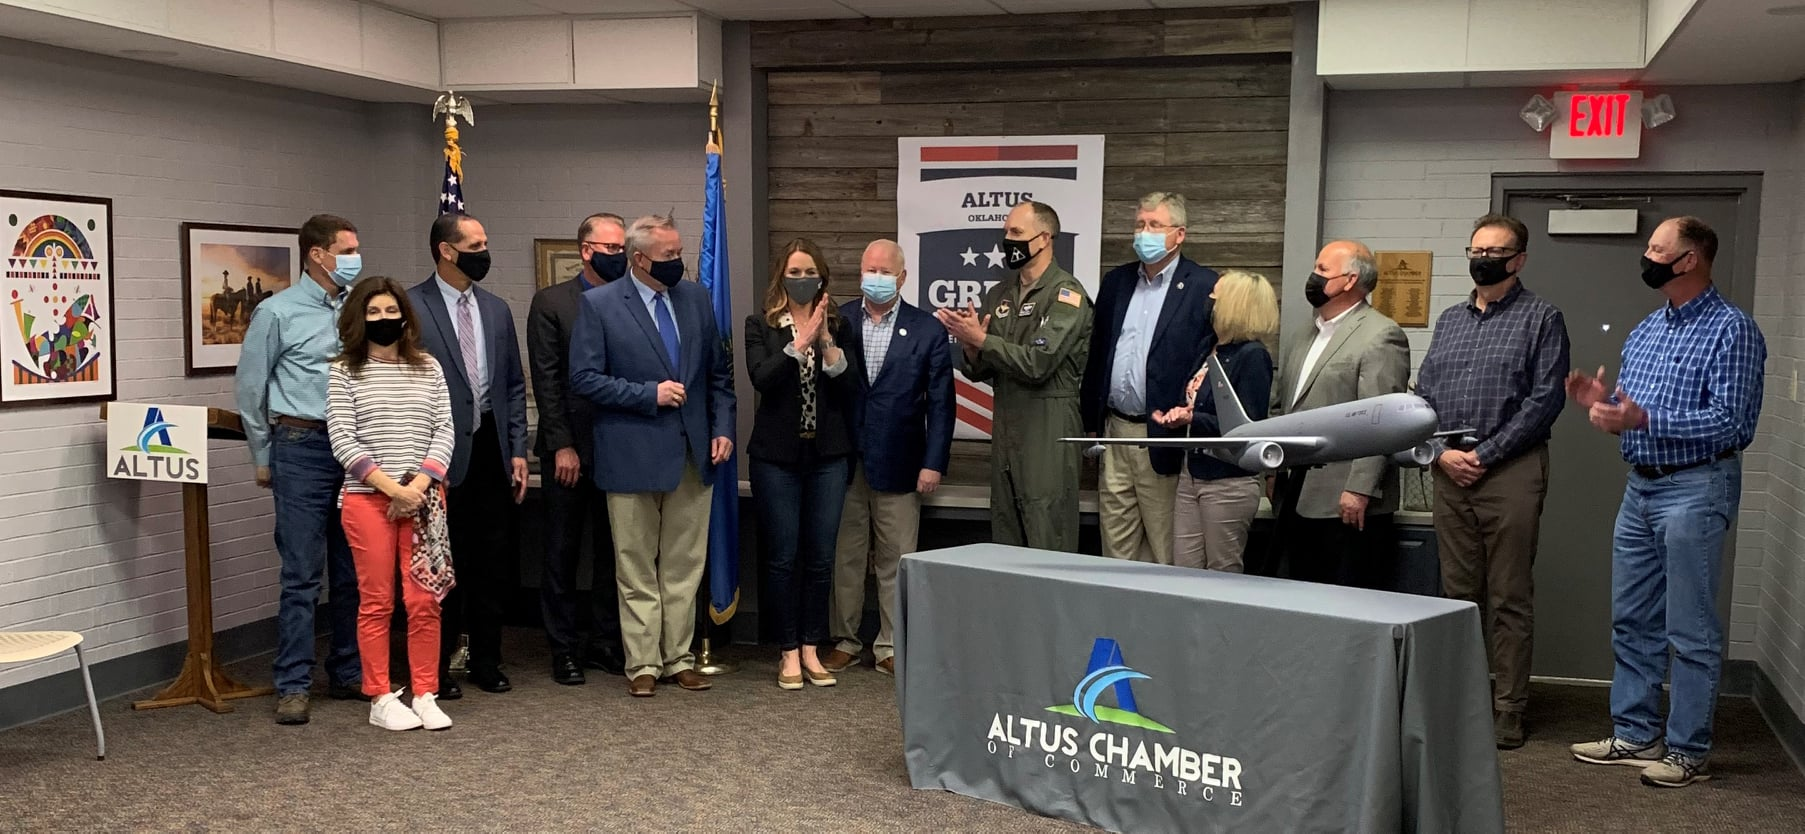 A group of people stand behind a model airplane and Altus Chamber of Commerce sign